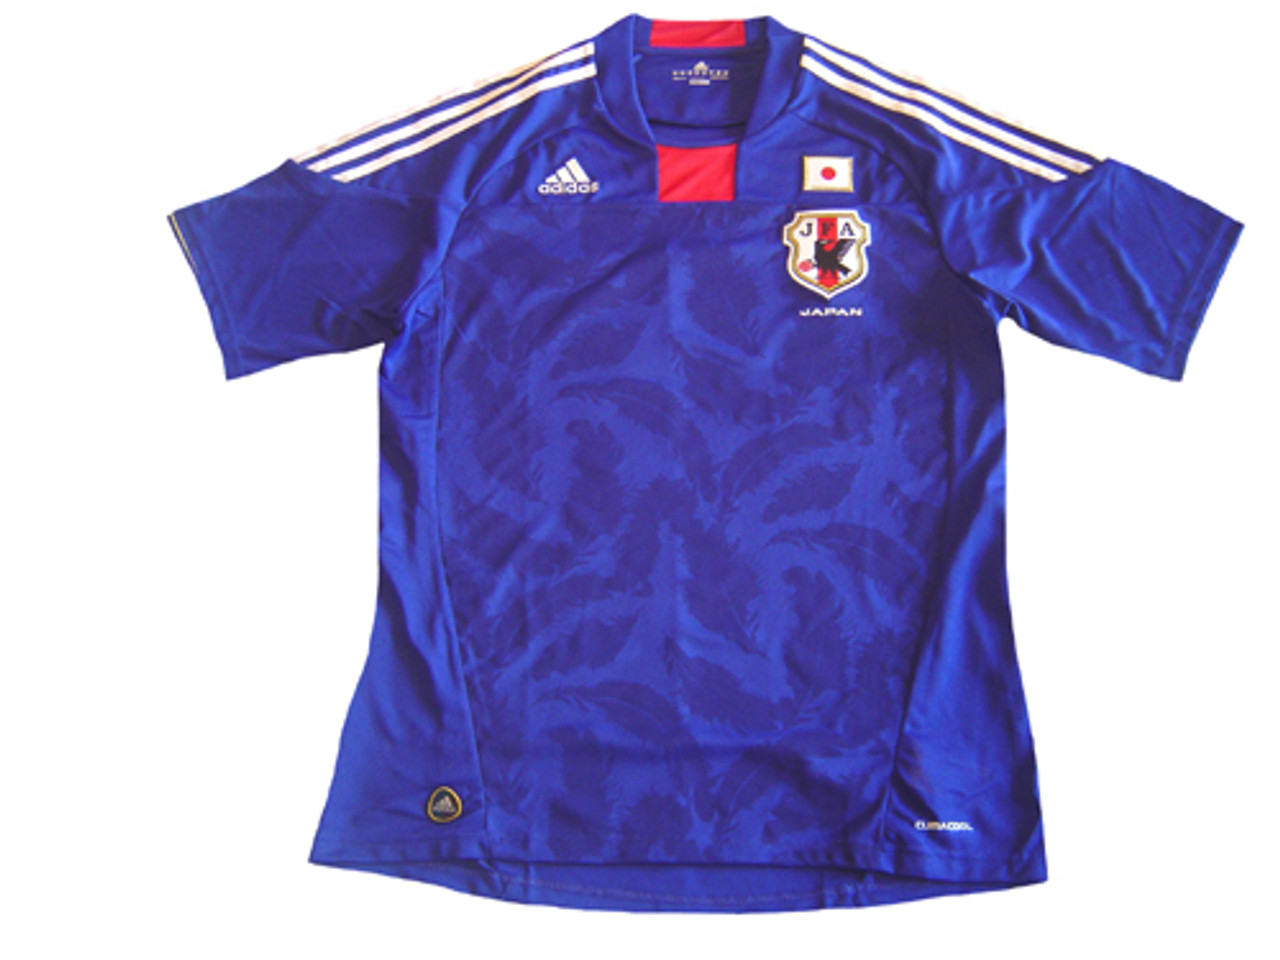 9f7db4cc ADIDAS JAPAN 2010 HOME JERSEY - Soccer Plus